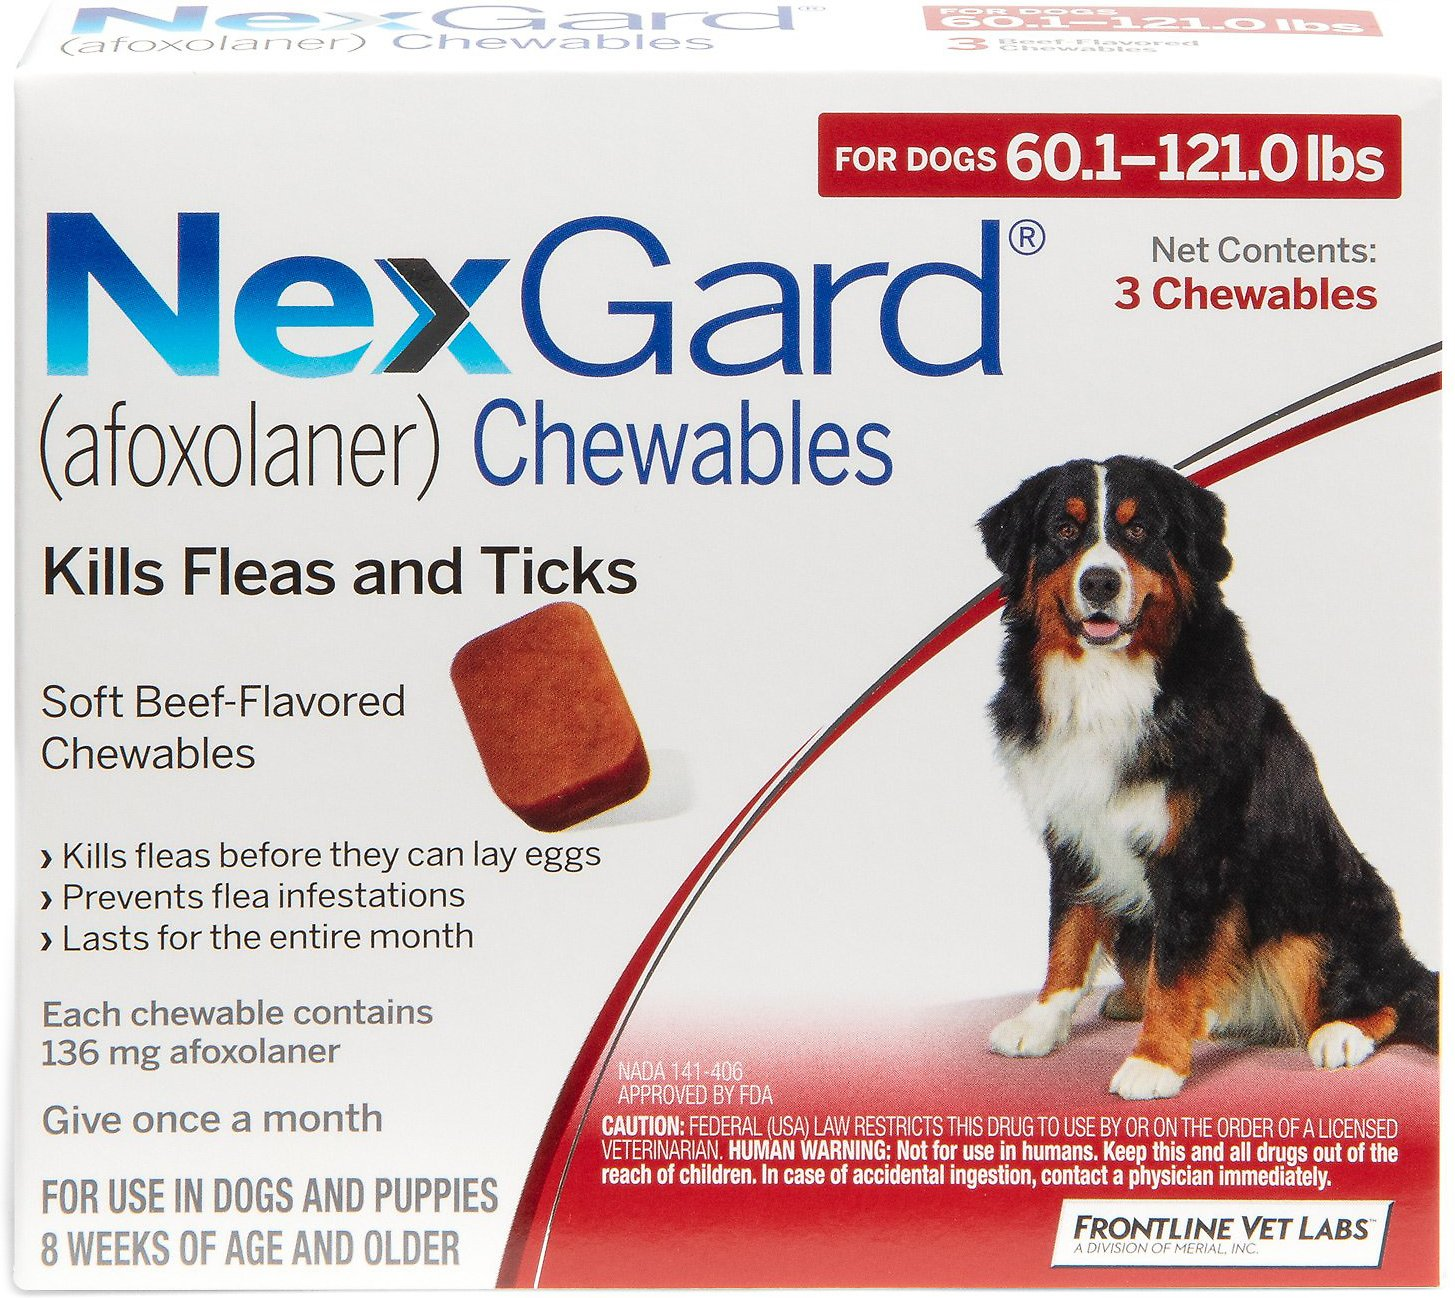 Nexgard Chewable Tablets For Dogs 60 1 121 Lbs 3